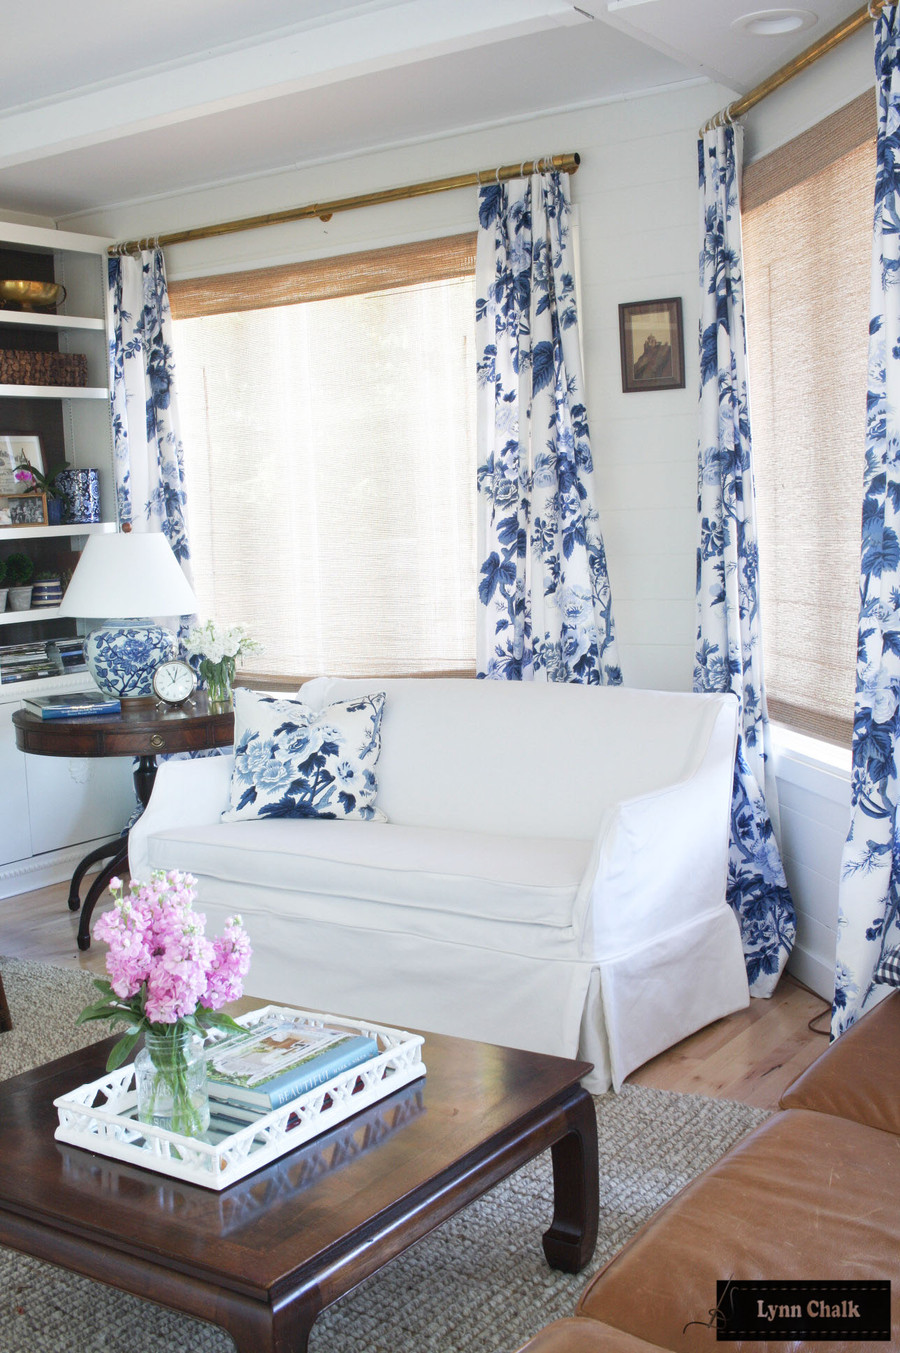 Schumacher Pyne Hollyhock Print Indigo Drapes and Pillow (comes in other colors)